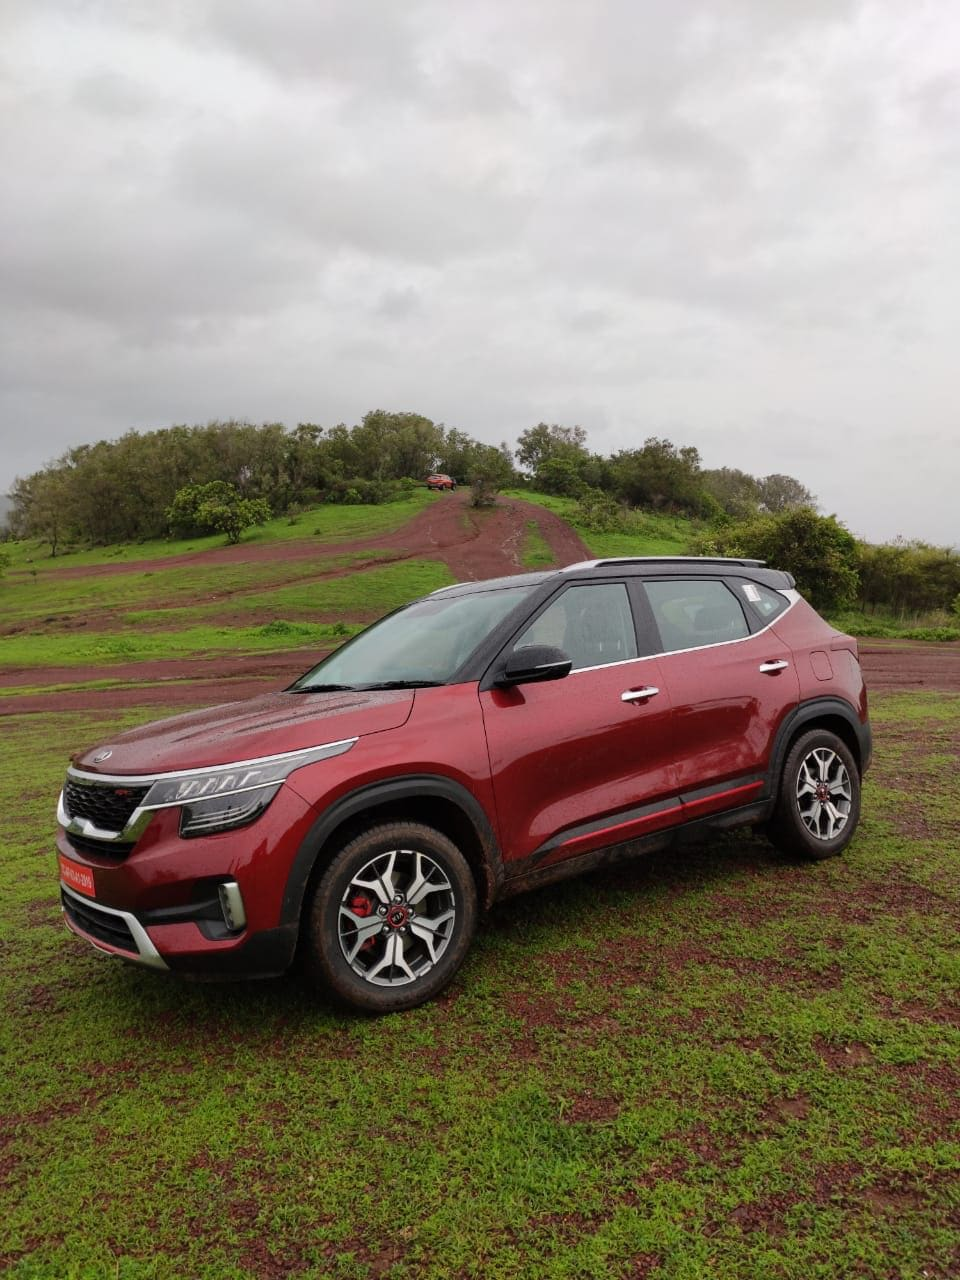 Kia Seltos's engines are BS-VI compliant. So there's a naturally aspirated 1.5-liter petrol unit making 115 HP and 144 NM of torque. This engine can be had either with a 6-speed manual gearbox or a 6-speed CVT automatic. The diesel gets a 1.5-liter turbocharged engine making 115 HP and 250 NM of torque. This has the option of a 6-speed manual or a 6-speed torque converter automatic. The third option in the line-up and one that is likely to garner the most attention is the 1.4-liter turbocharged petrol which makes 140 HP and 242 NM of torque. This comes mated to a 7-speed dual-clutch automatic transmission other than a 6-speed manual.